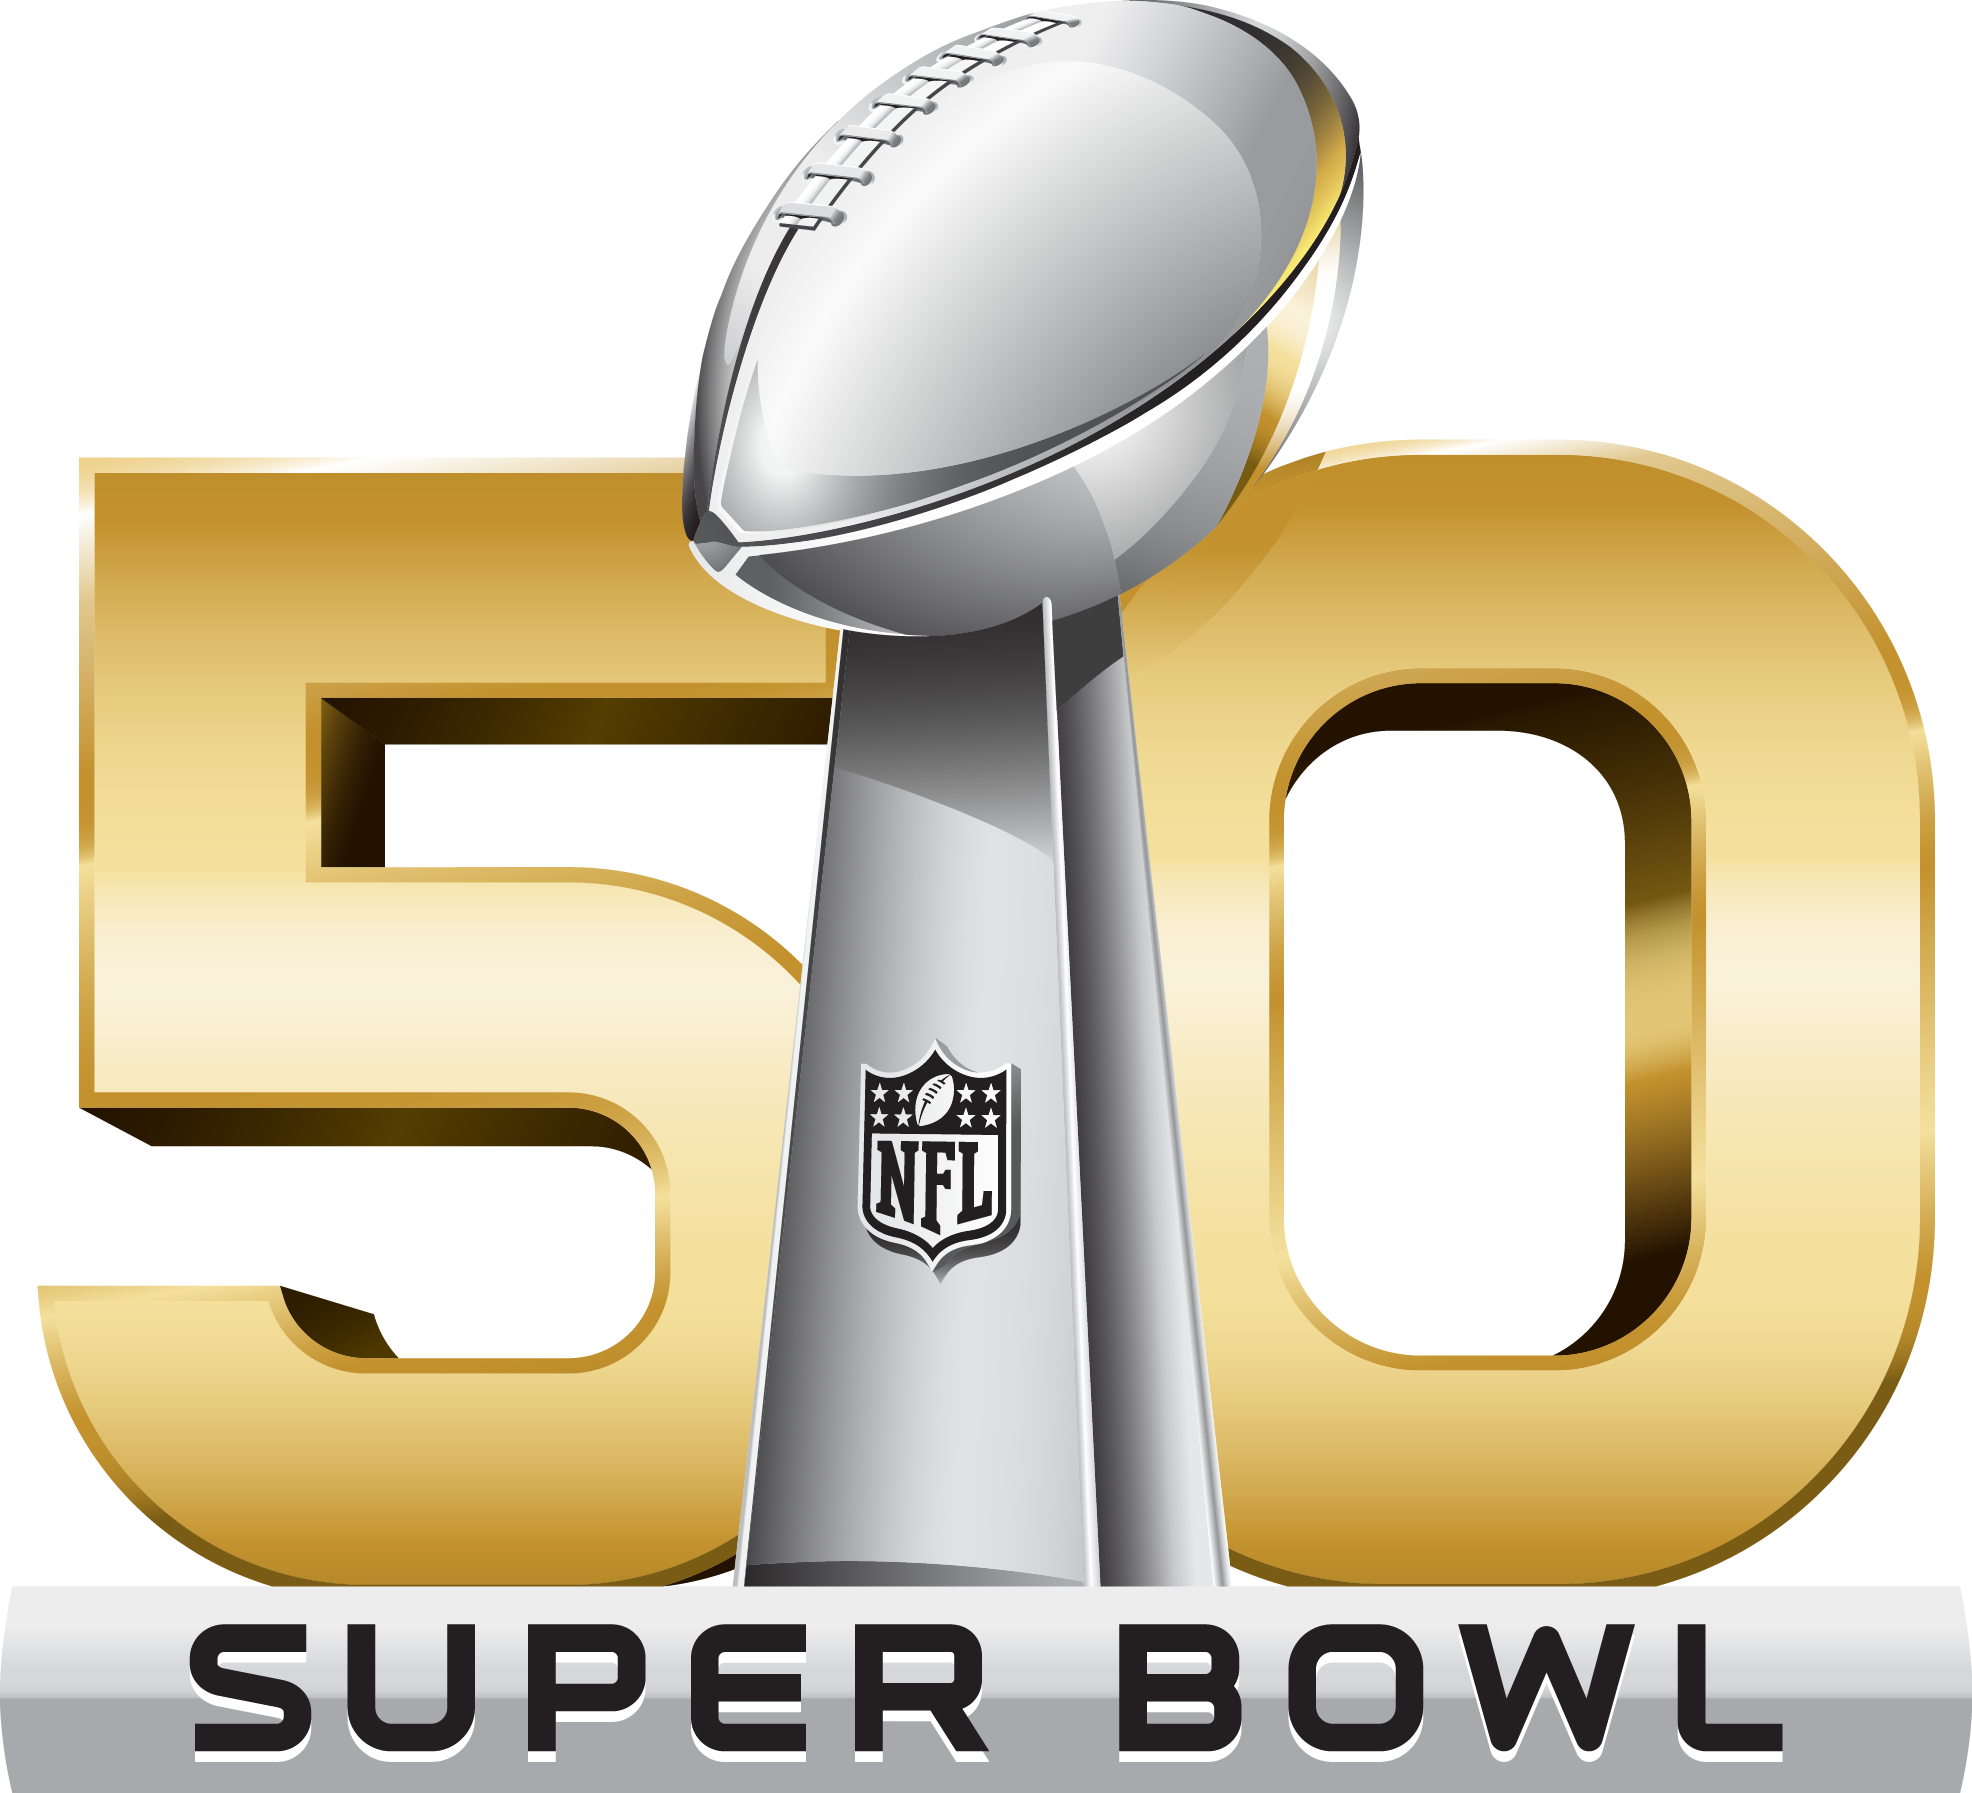 February Clipart Super Bowl February Super Bowl Transparent Free For Download On Webstockreview 2021